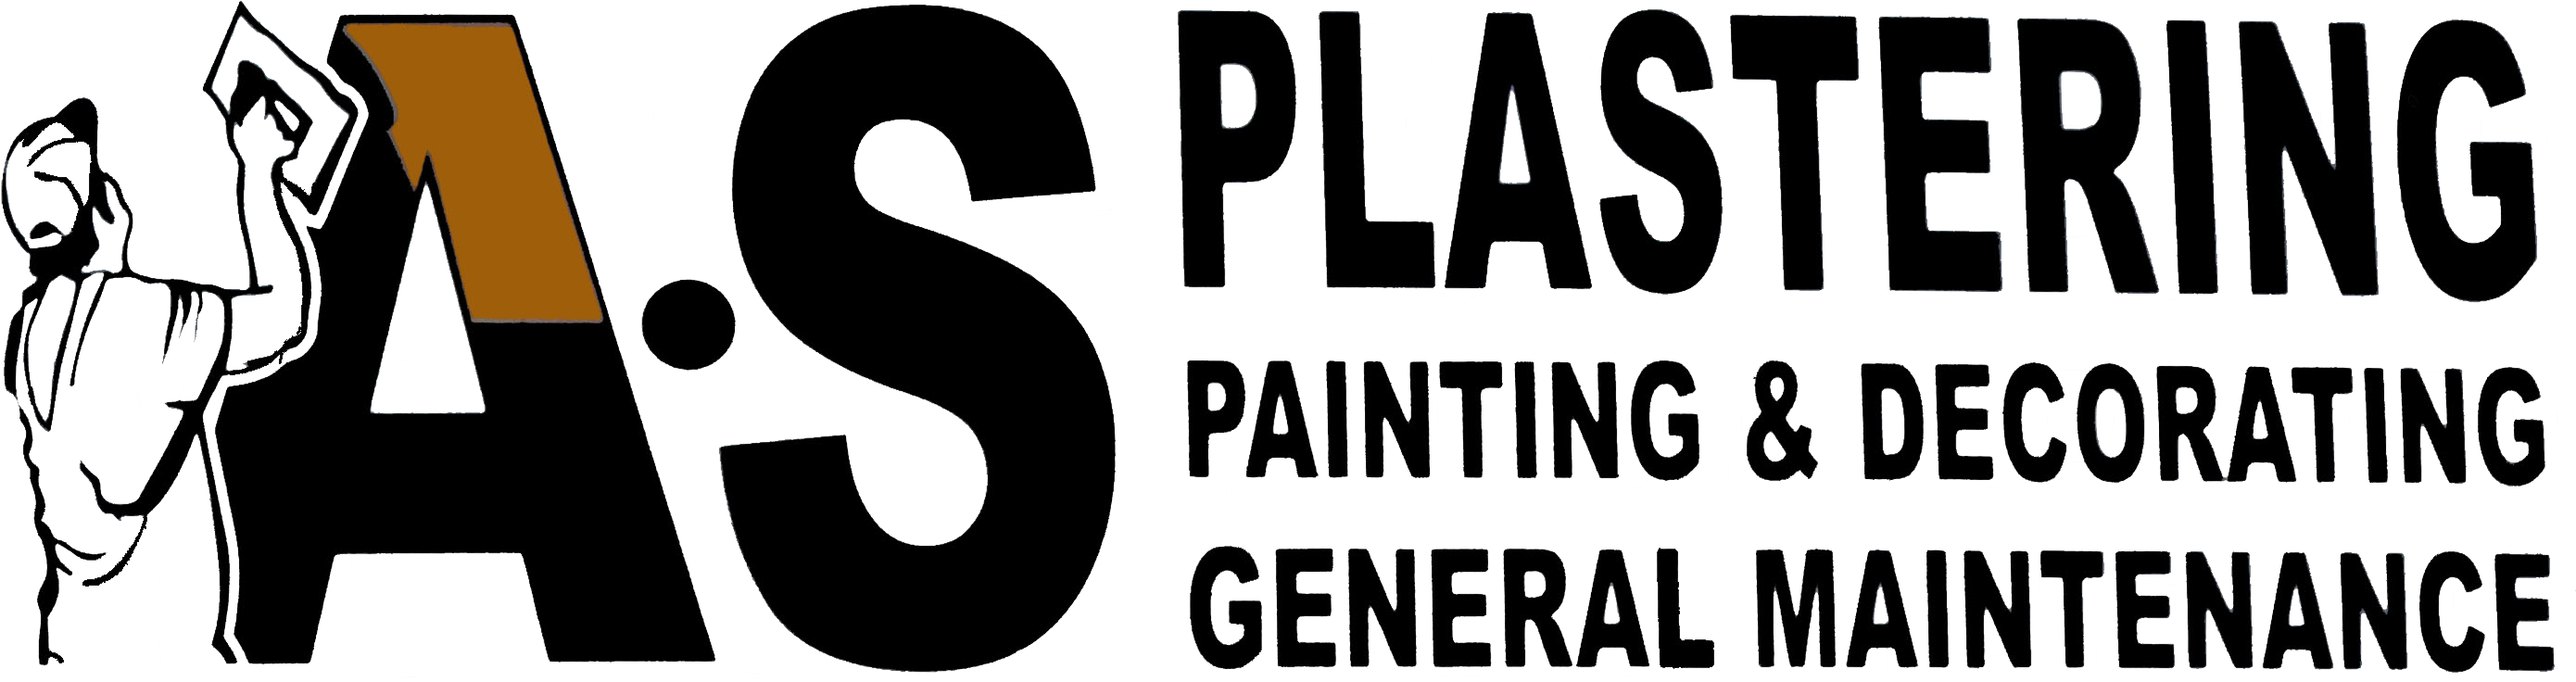 A.S Plastering - Painting & Decorating, General Maintenance